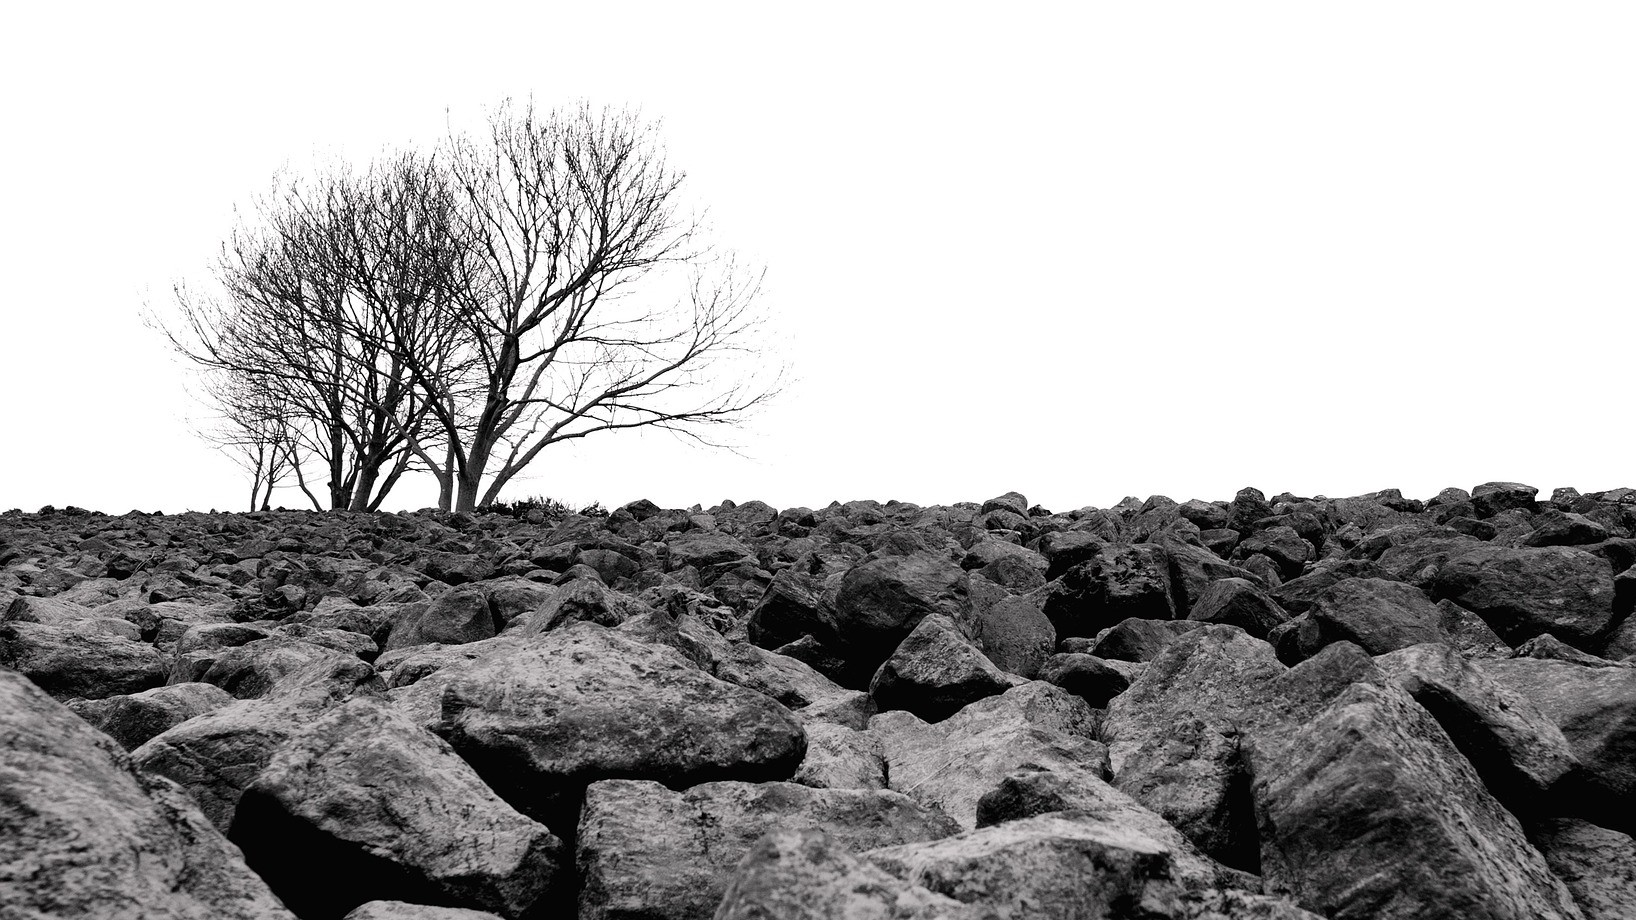 Black and white photo of stark trees on a rocky plain.